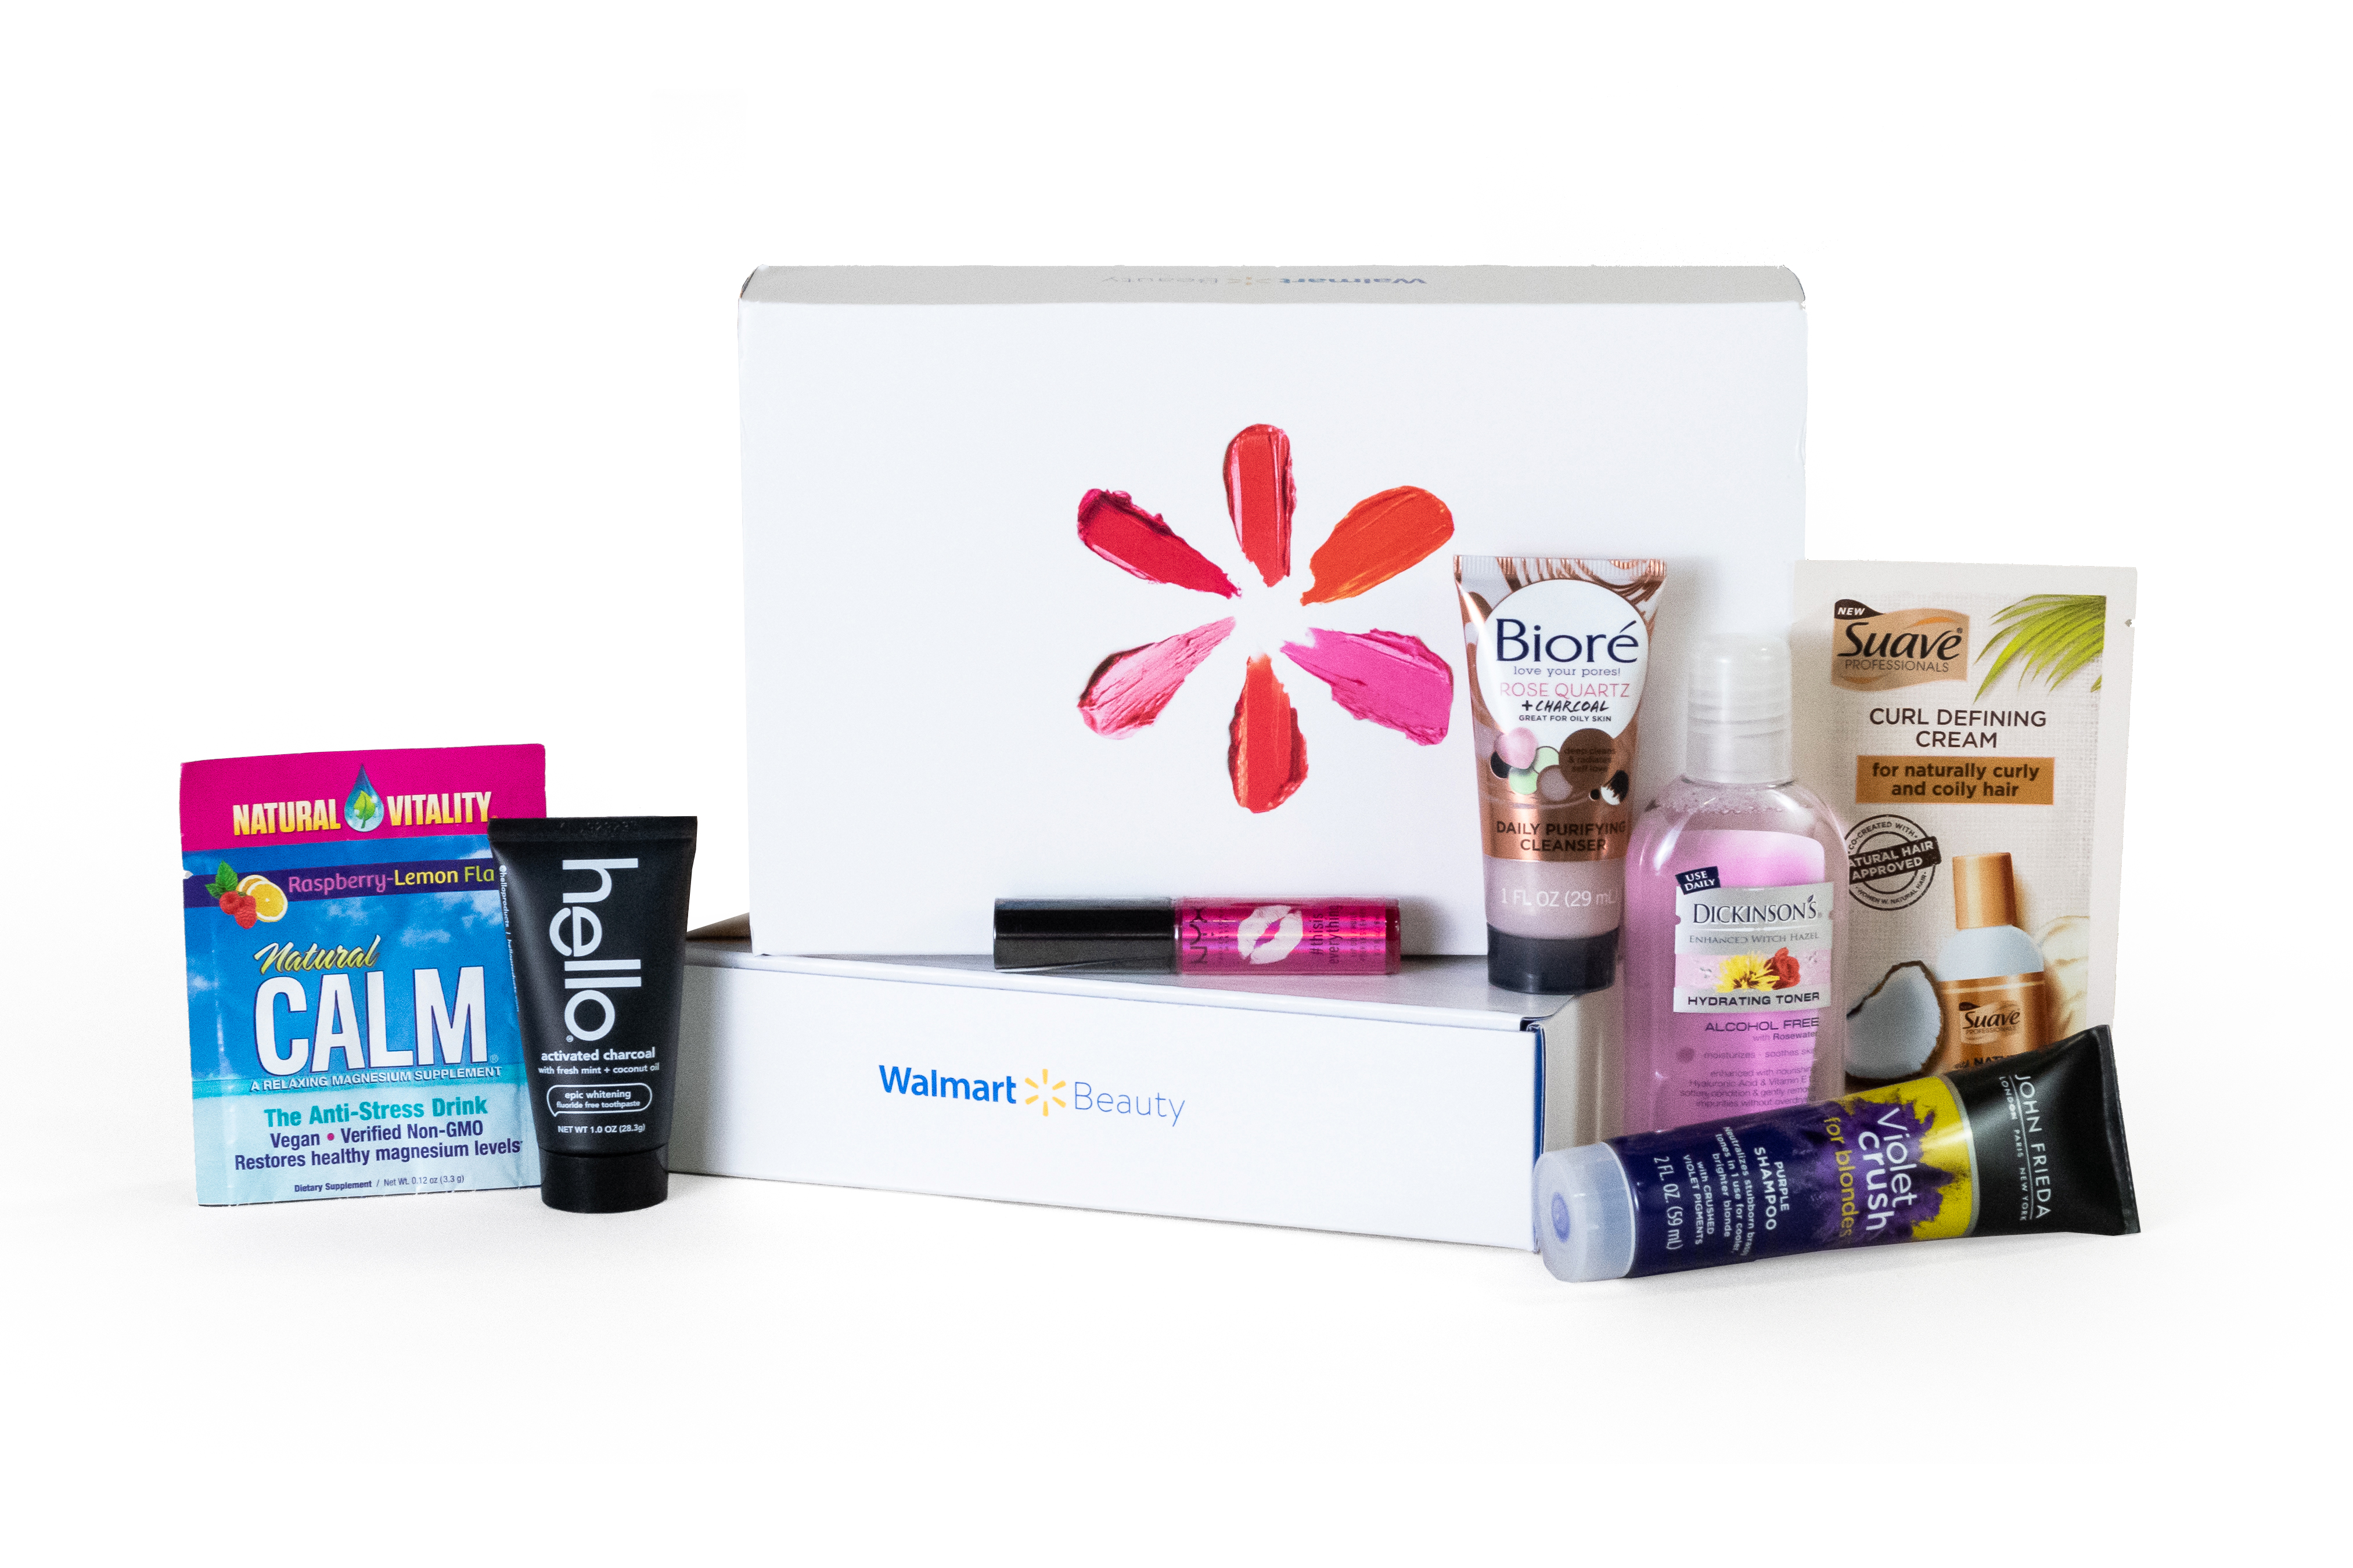 New Walmart Beauty Box Only $5...